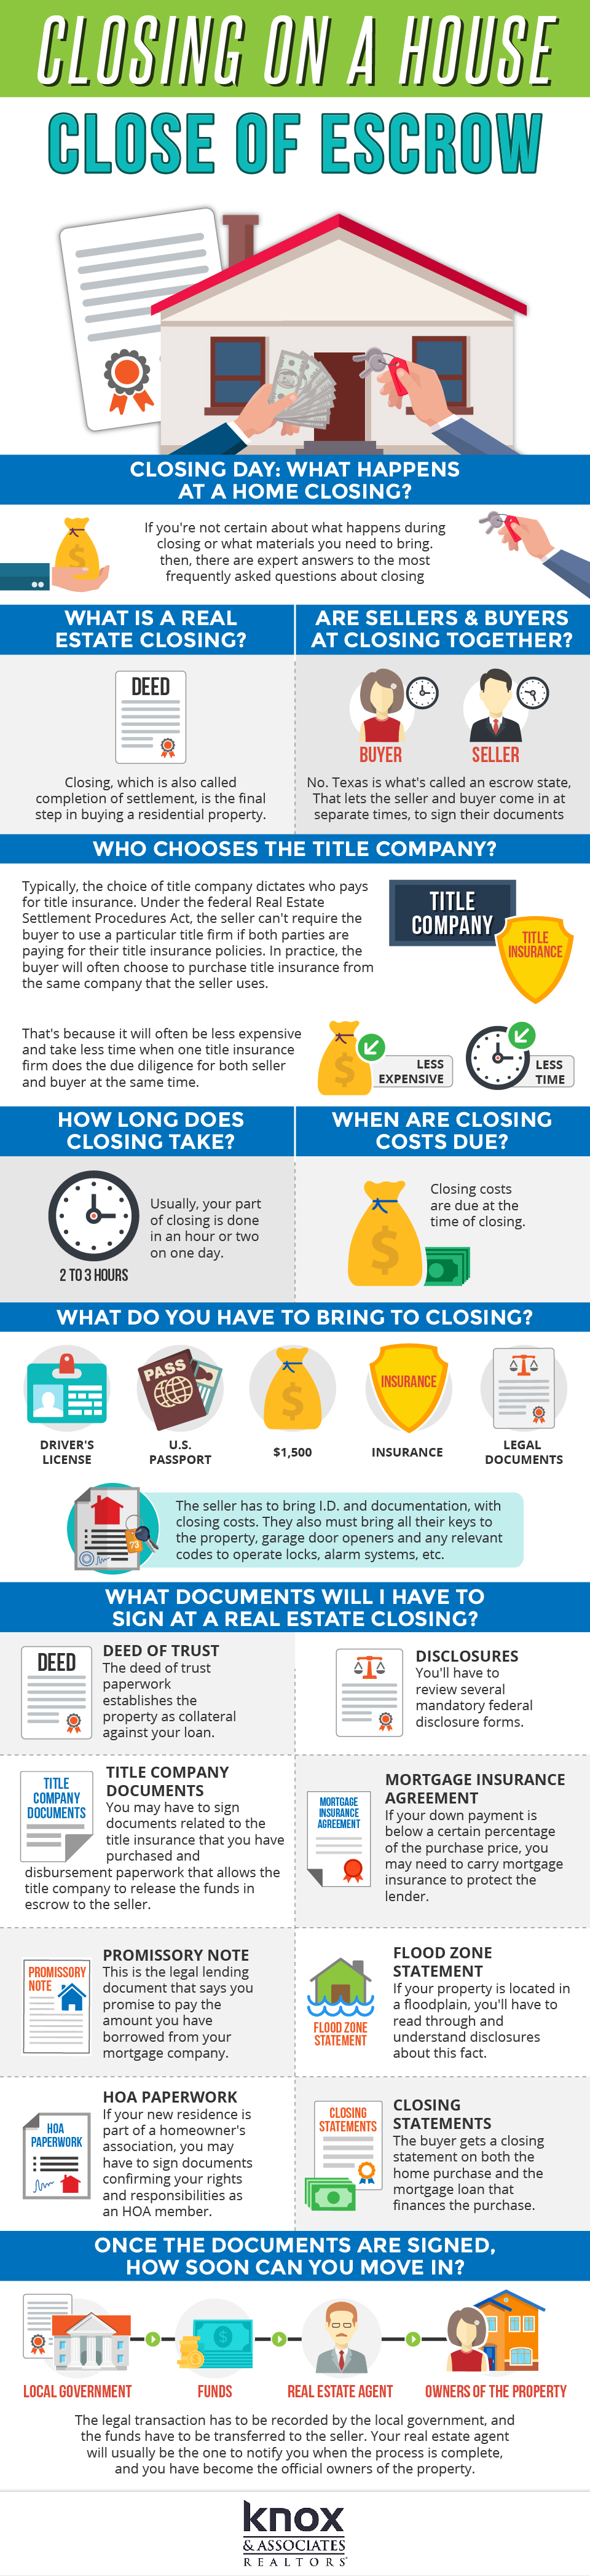 closing on a house - close of escrow